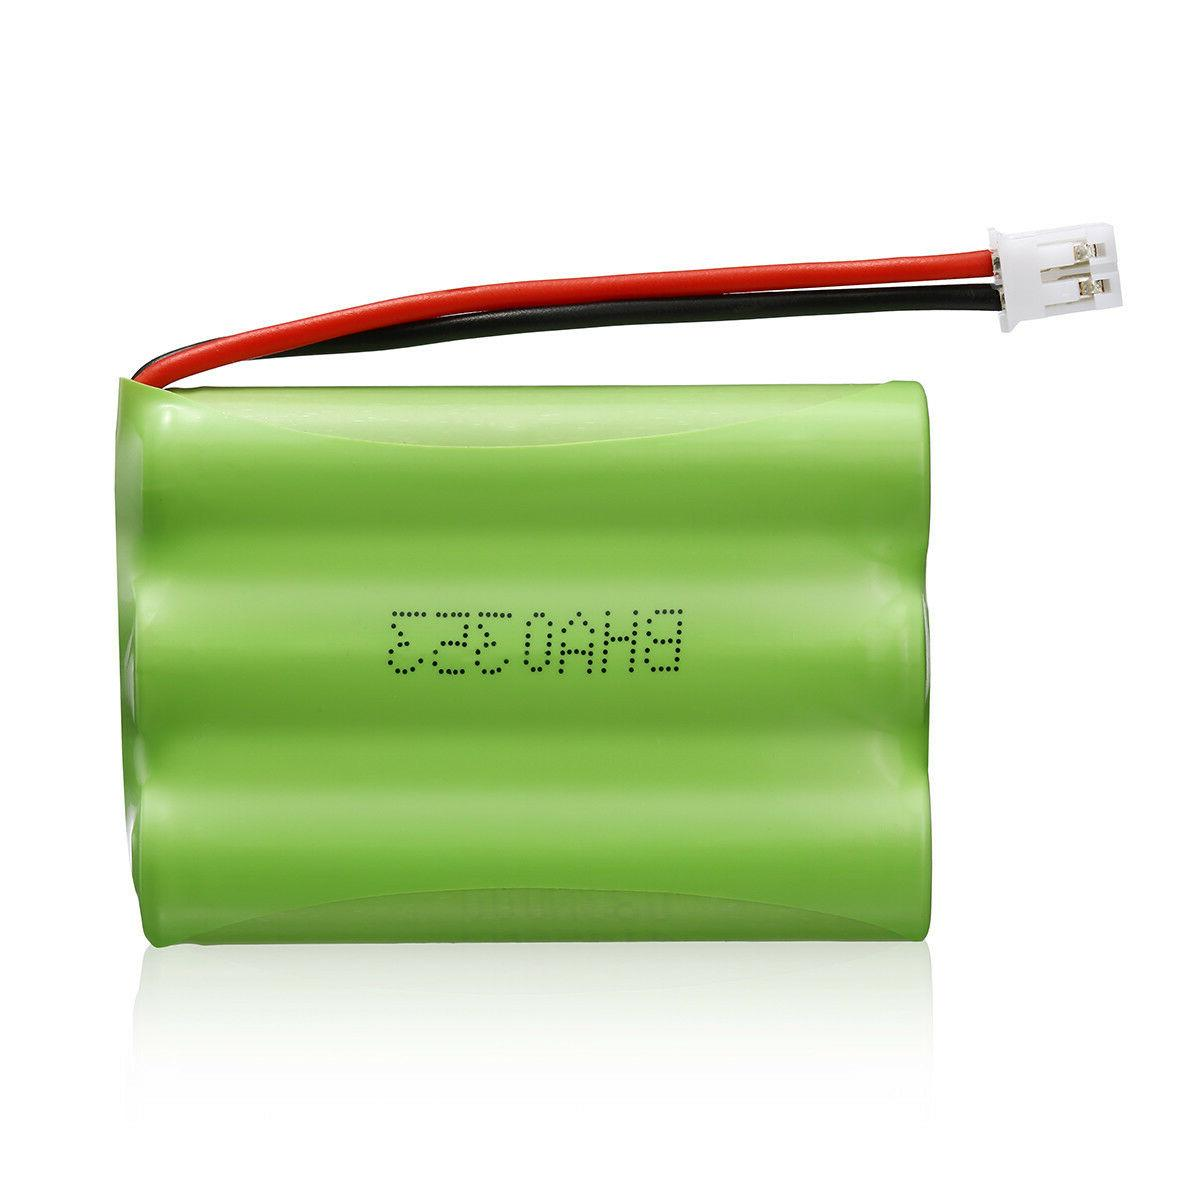 3.6V 900mAh Baby Battery for Motorola MBP33 MBP33S MBP36 MBP36S